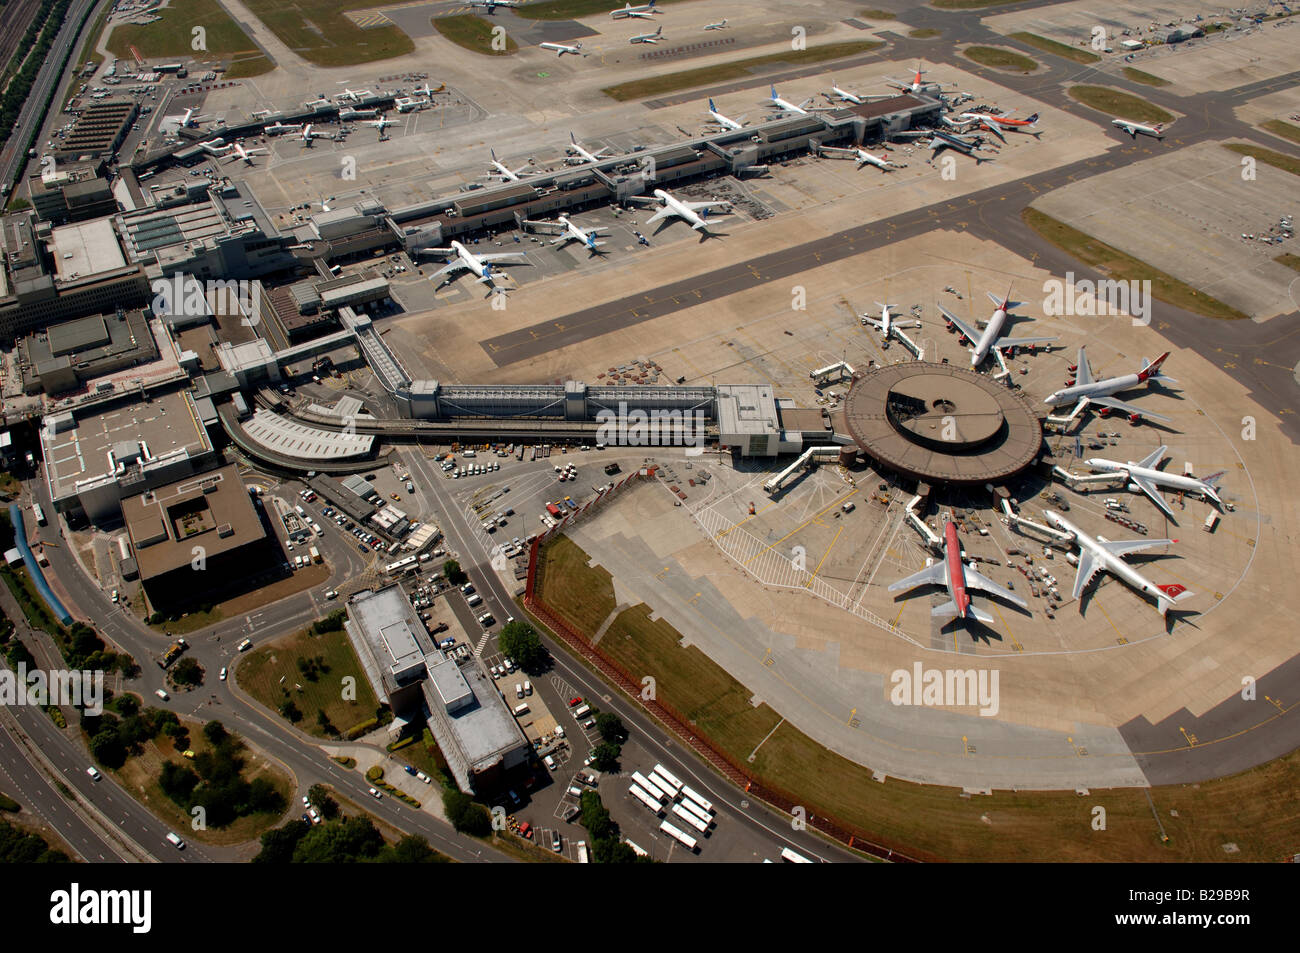 Gatwick Airport Date 12 03 2008 Ref ZB648 111149 0024 COMPULSORY CREDIT World Pictures Photoshot Stock Photo